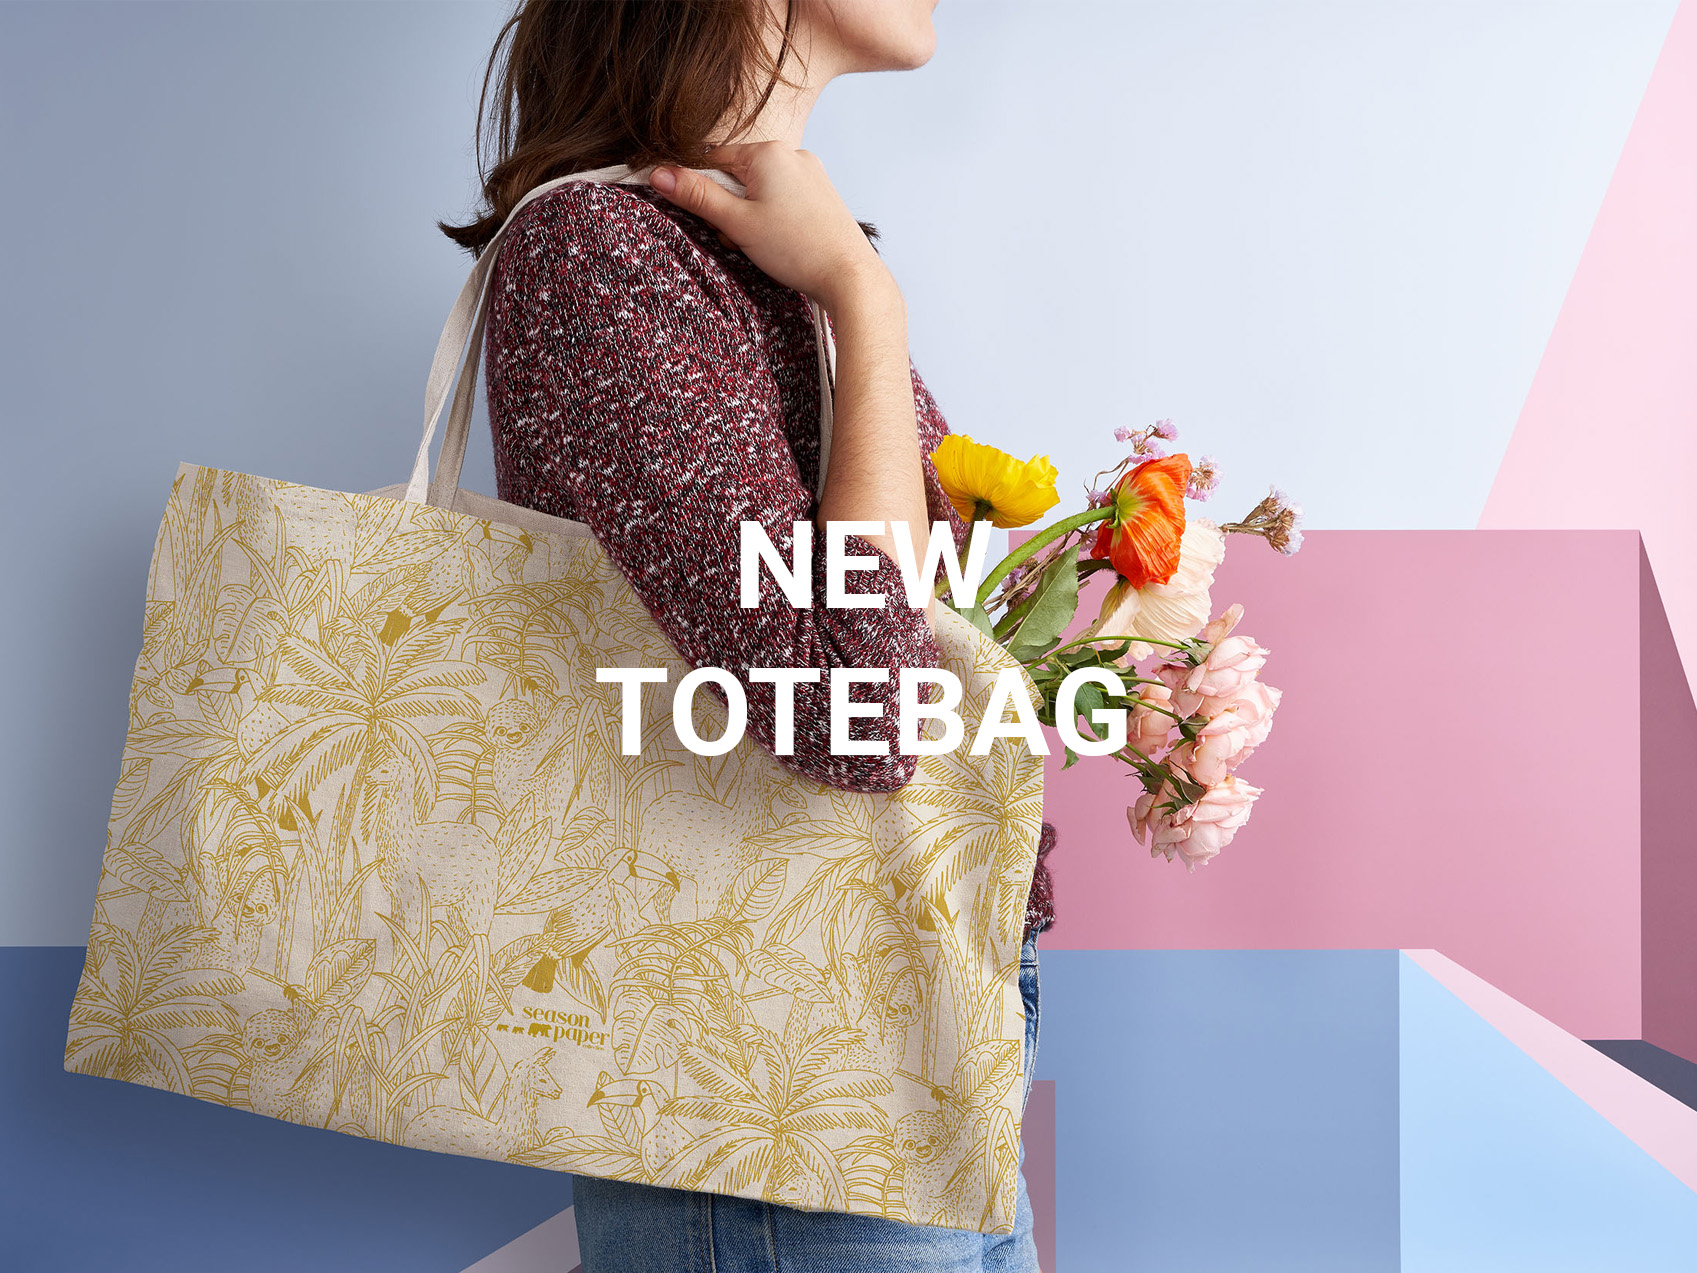 SS19-LIMA-AMBIANCE-TOTEBAG-TEXTE-copie